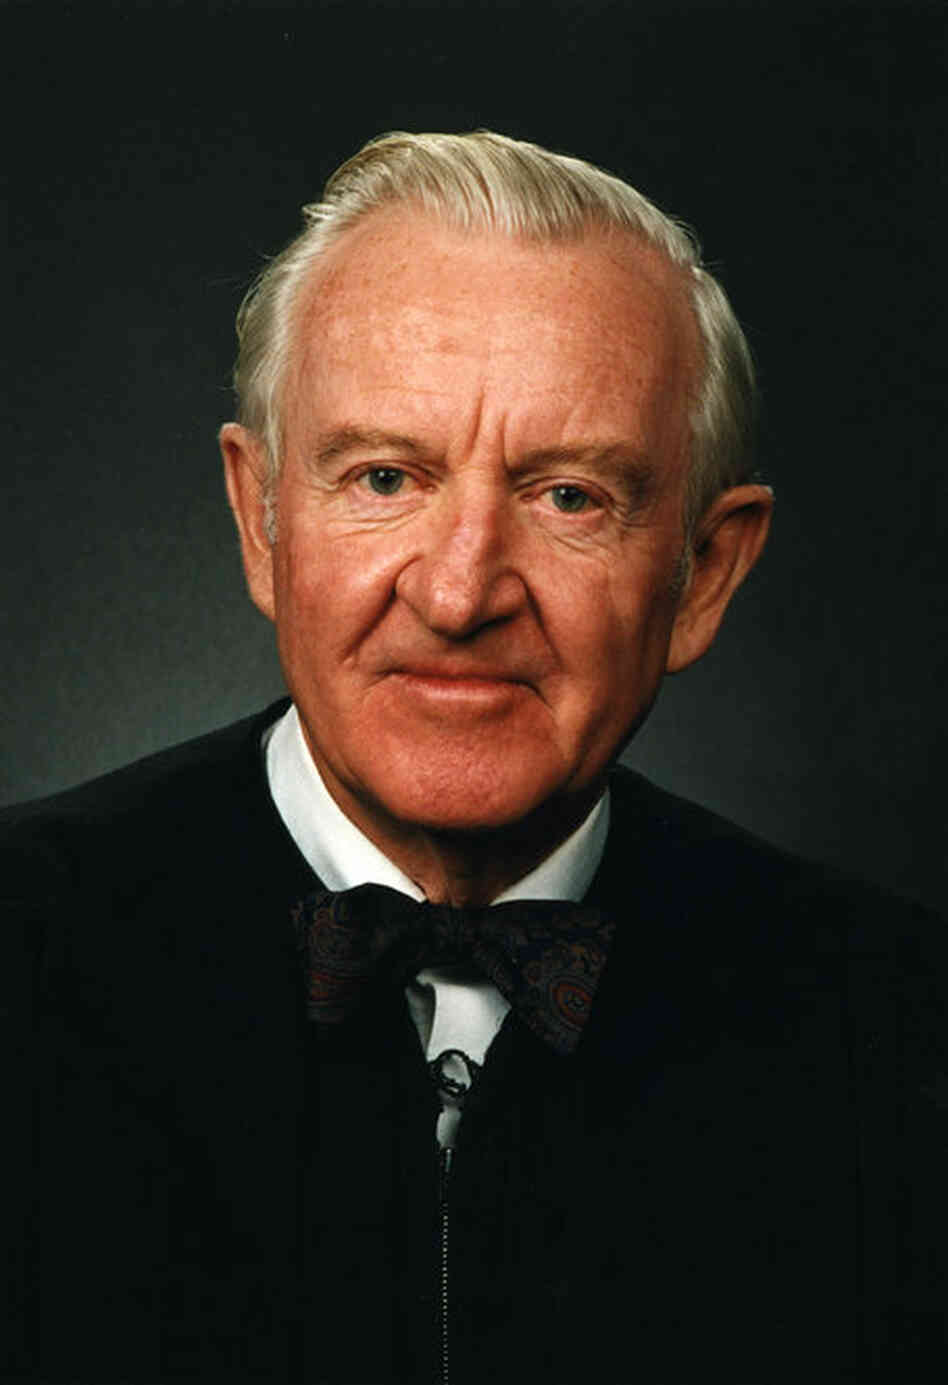 Justice John Paul Stevens, the Supreme Court's oldest member, is retiring. President Barack Obama now has his second high court opening to fill.